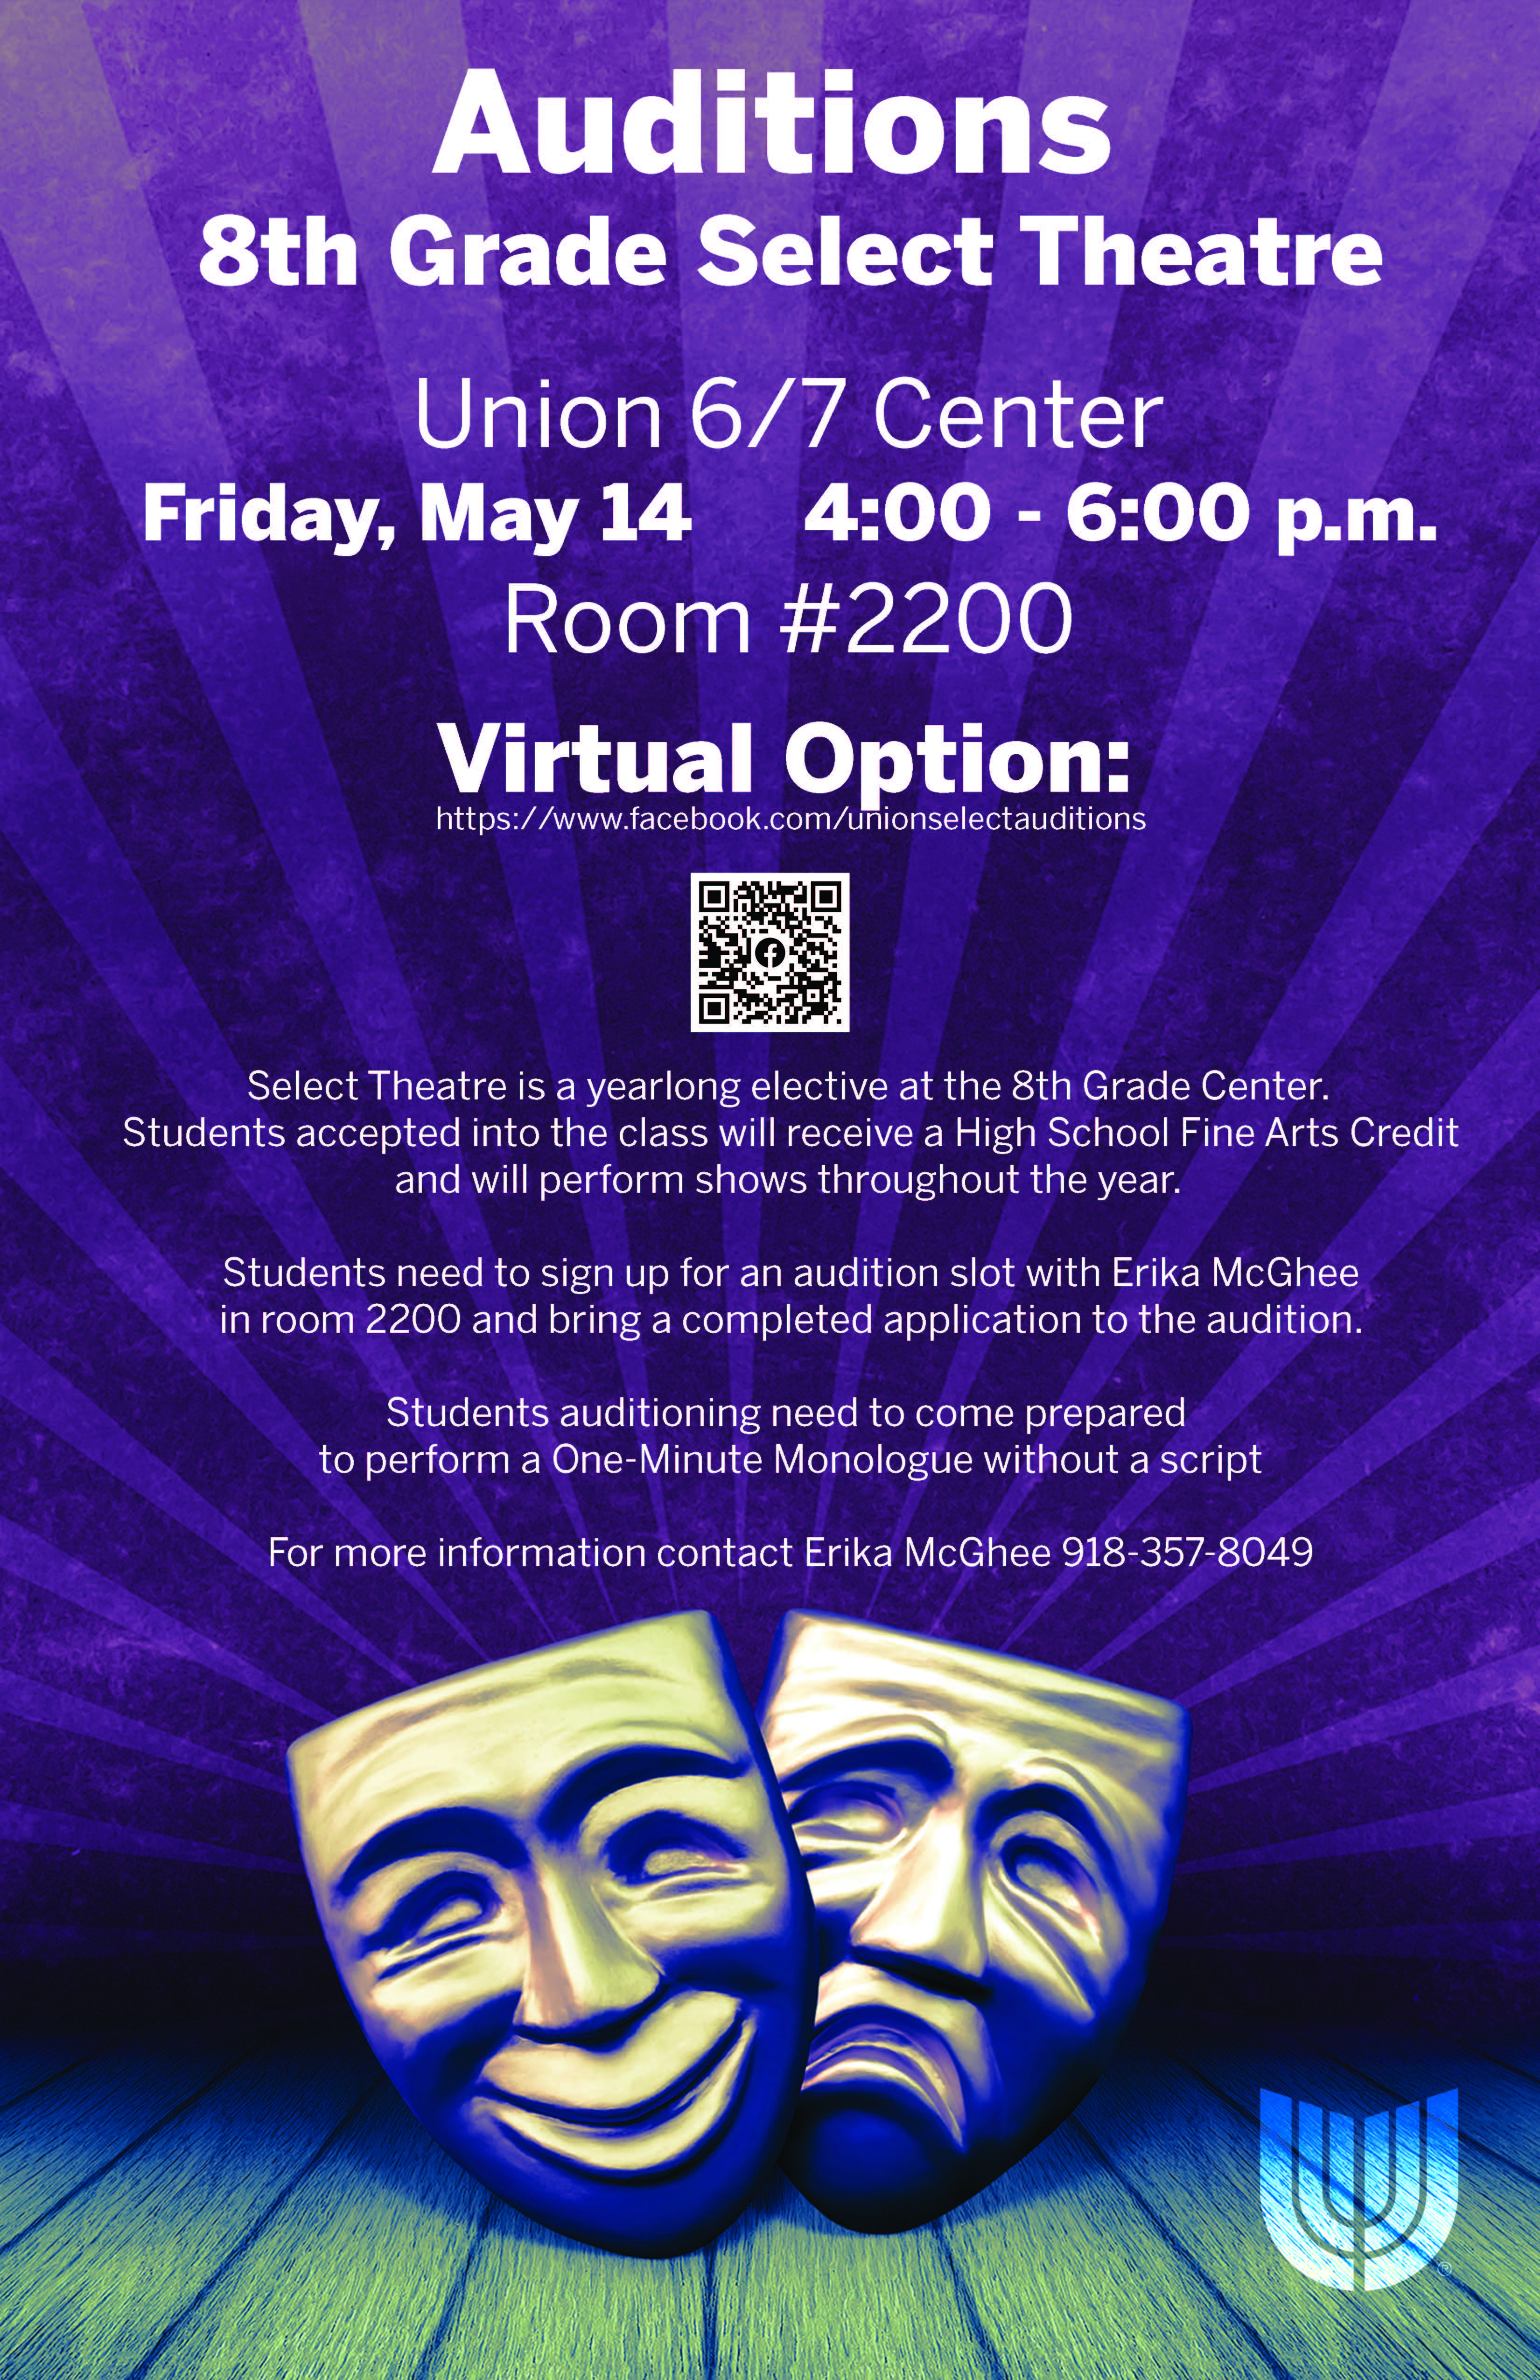 Auditions for 8th Grade Select Theatre are scheduled from 4 to 6 p.m. Friday, May 14, in Room 2200 at the Union 6th/7th Grade Center.  Students can audition virtually at https://www.facebook.com/unionselectauditions  Select Theatre is a year-long elective at the 8th Grade Center. Students accepted into the class will receive a High School Fine Arts Credit and will perform shows throughout the year.  For more information, contact Erika McGhee at 918-357-8049.